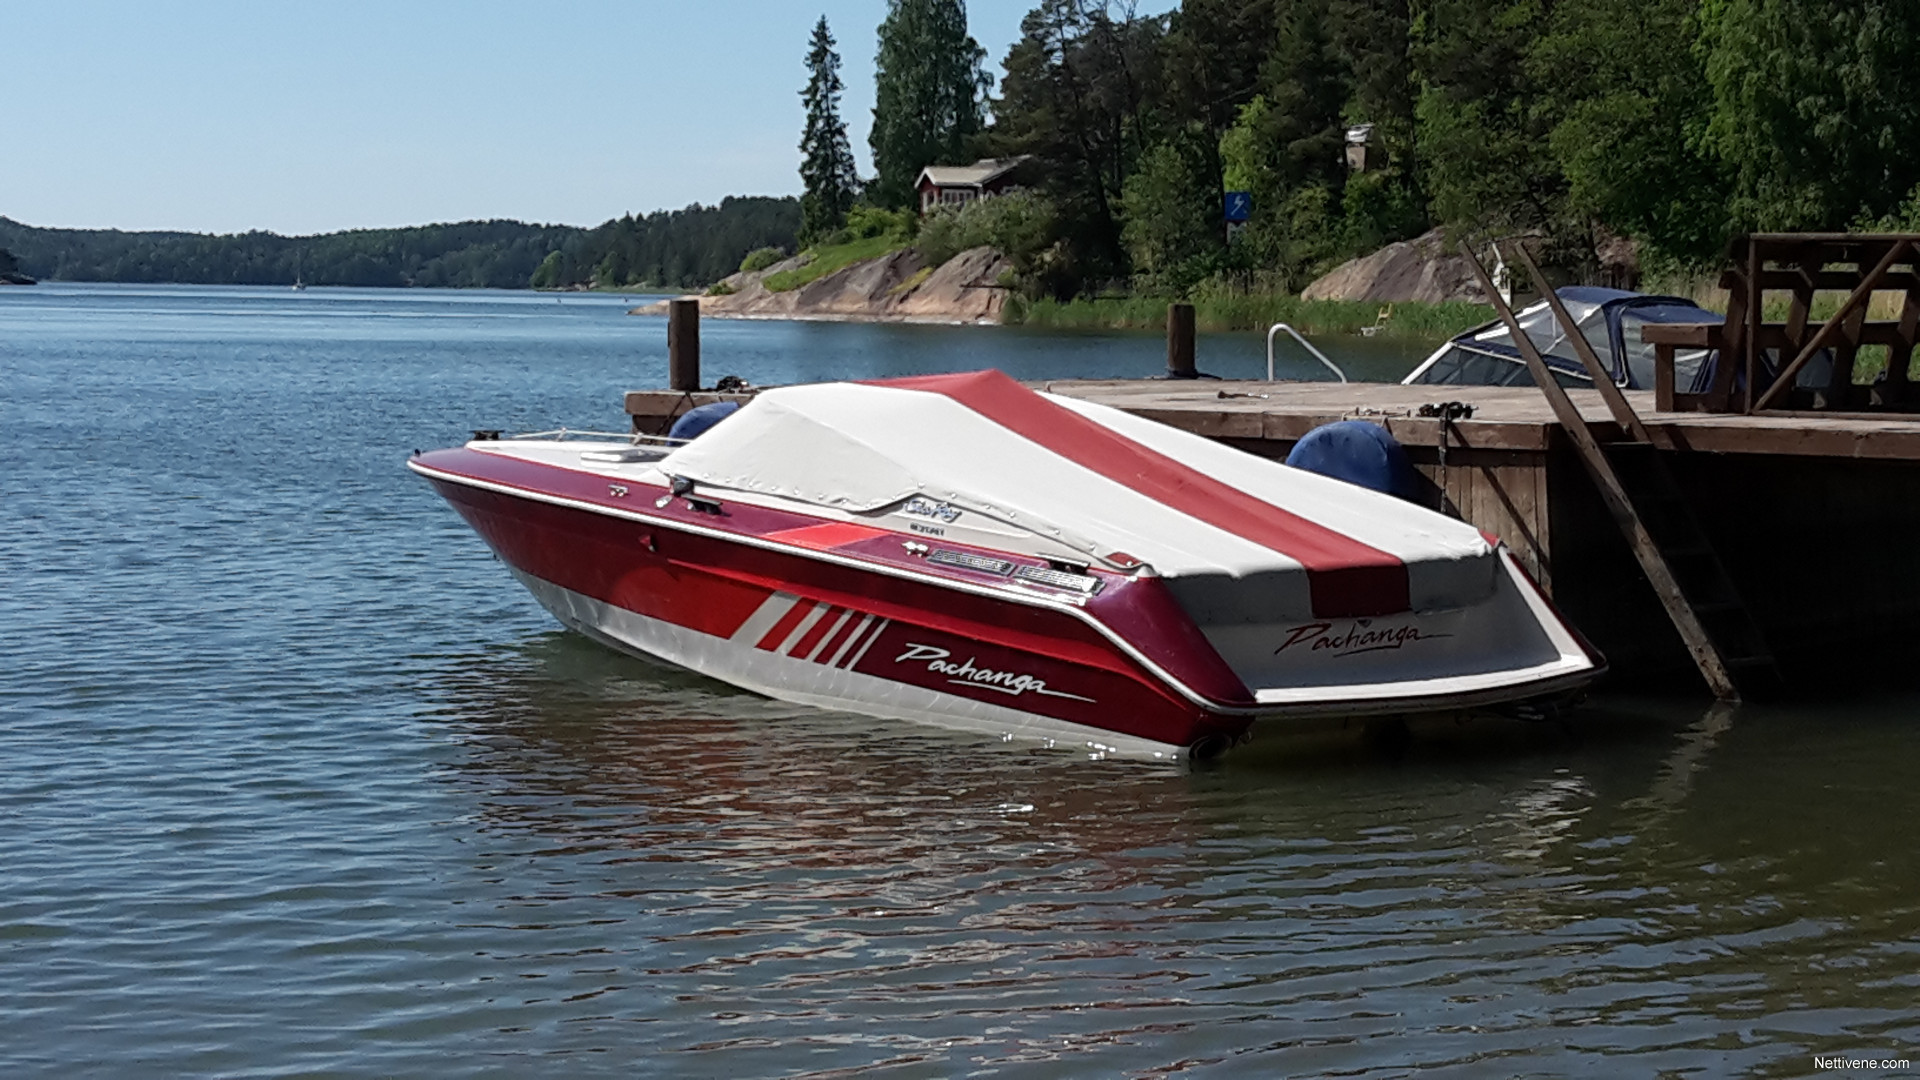 In the late eighties Sea Ray had a performance line called Pachanga, with a 22, 27 and 33. They were when Sea Ray was a powerhouse in the industry, but the brand has struggled in the last 15 years with no design direction and no exciting products.